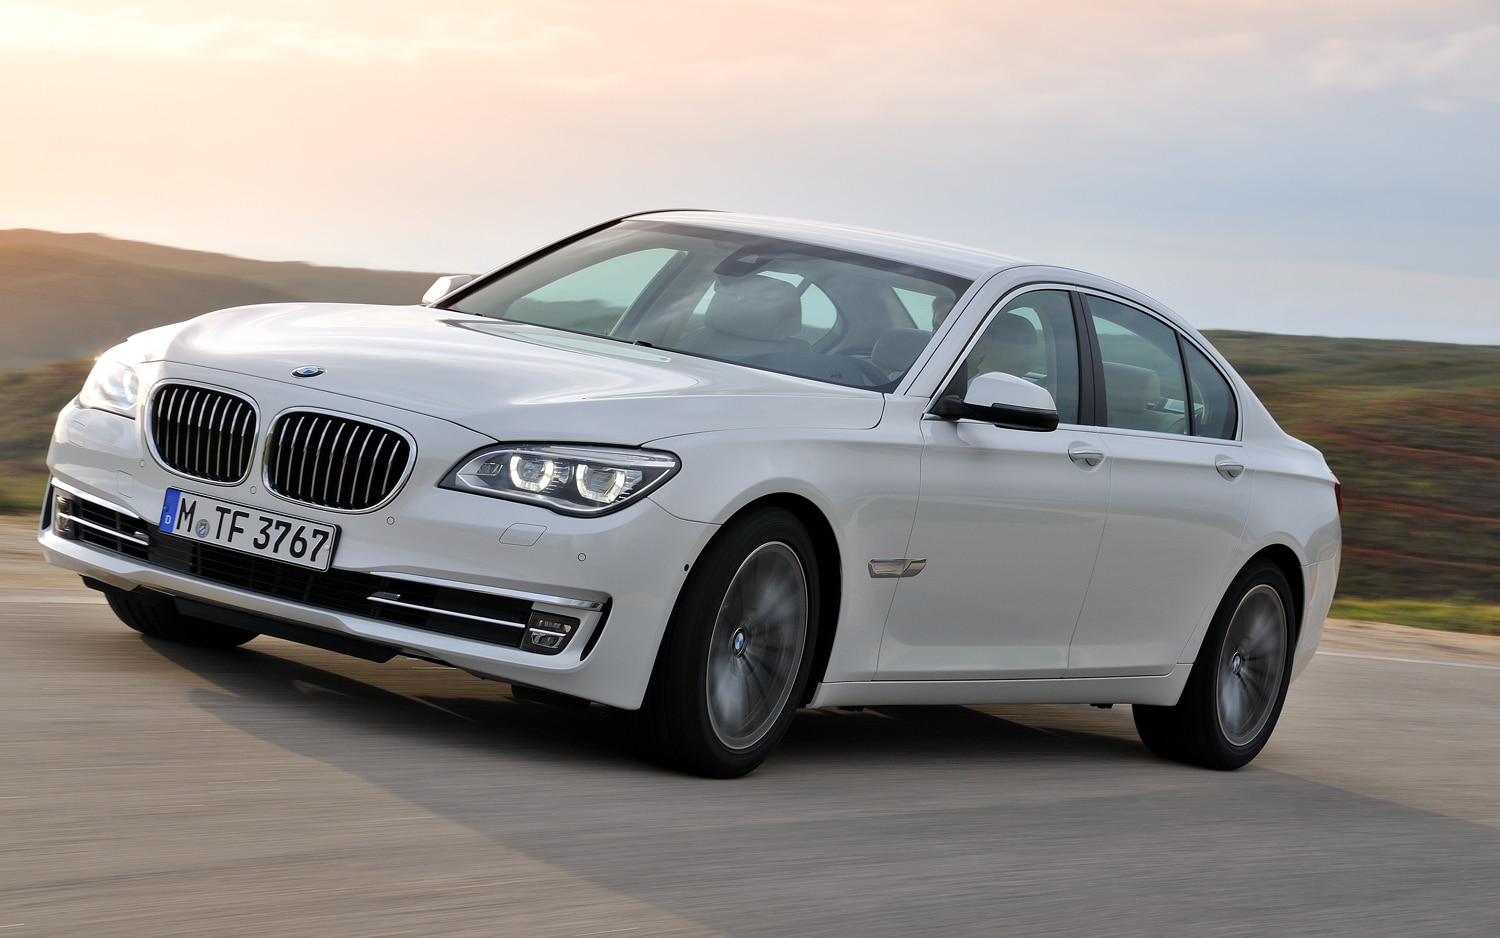 2013 BMW 7 Series Front Three Quarter Left Front Quarter In Motion1